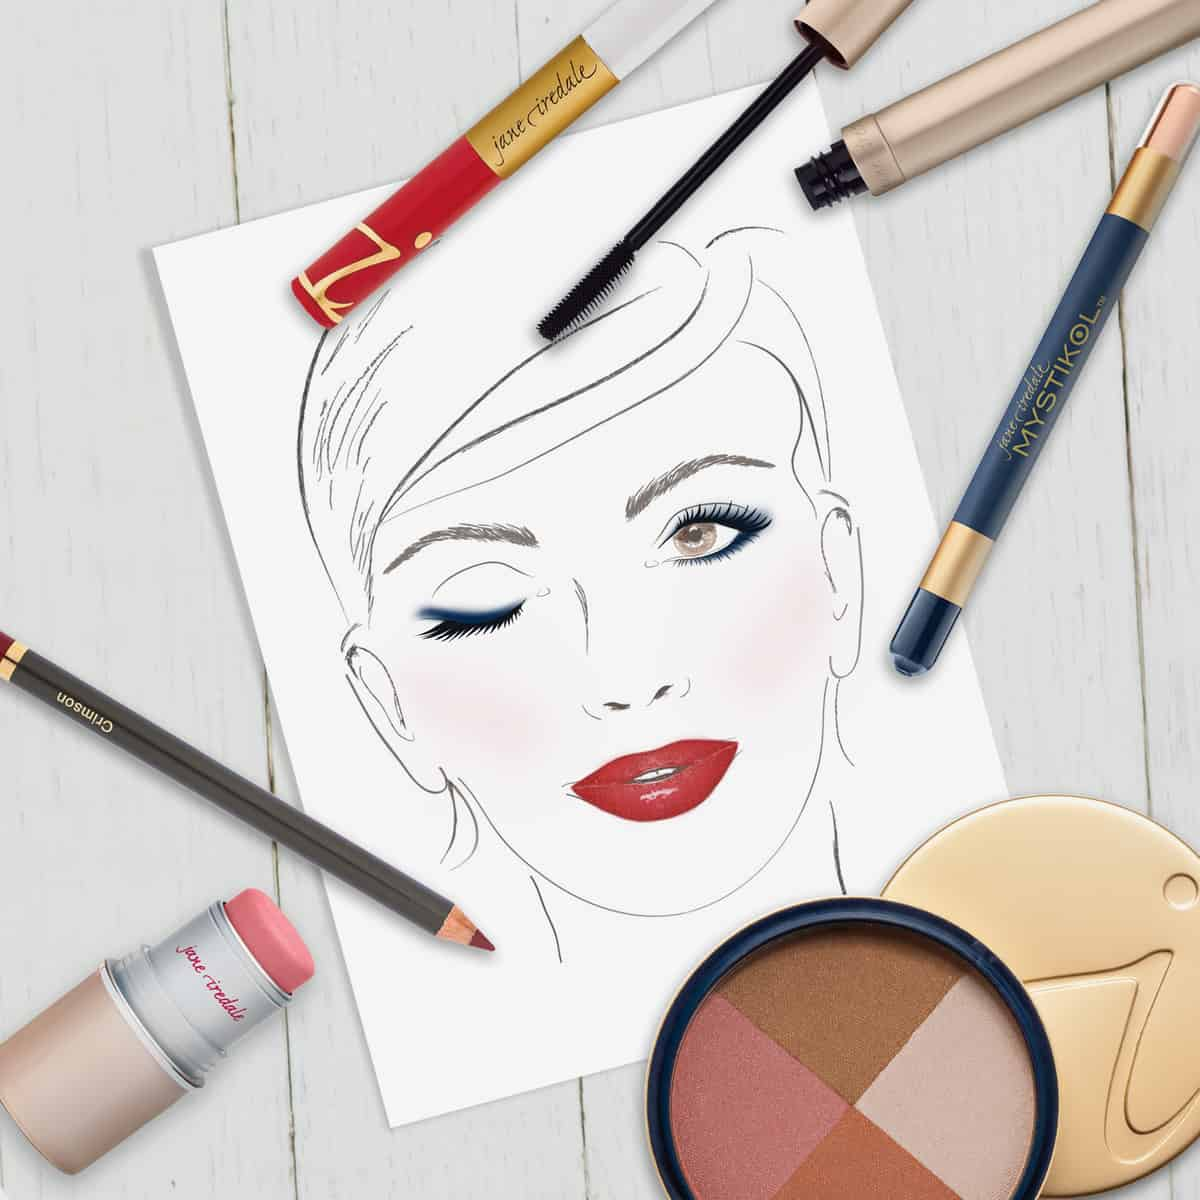 memorial day makeup look on illustration of woman